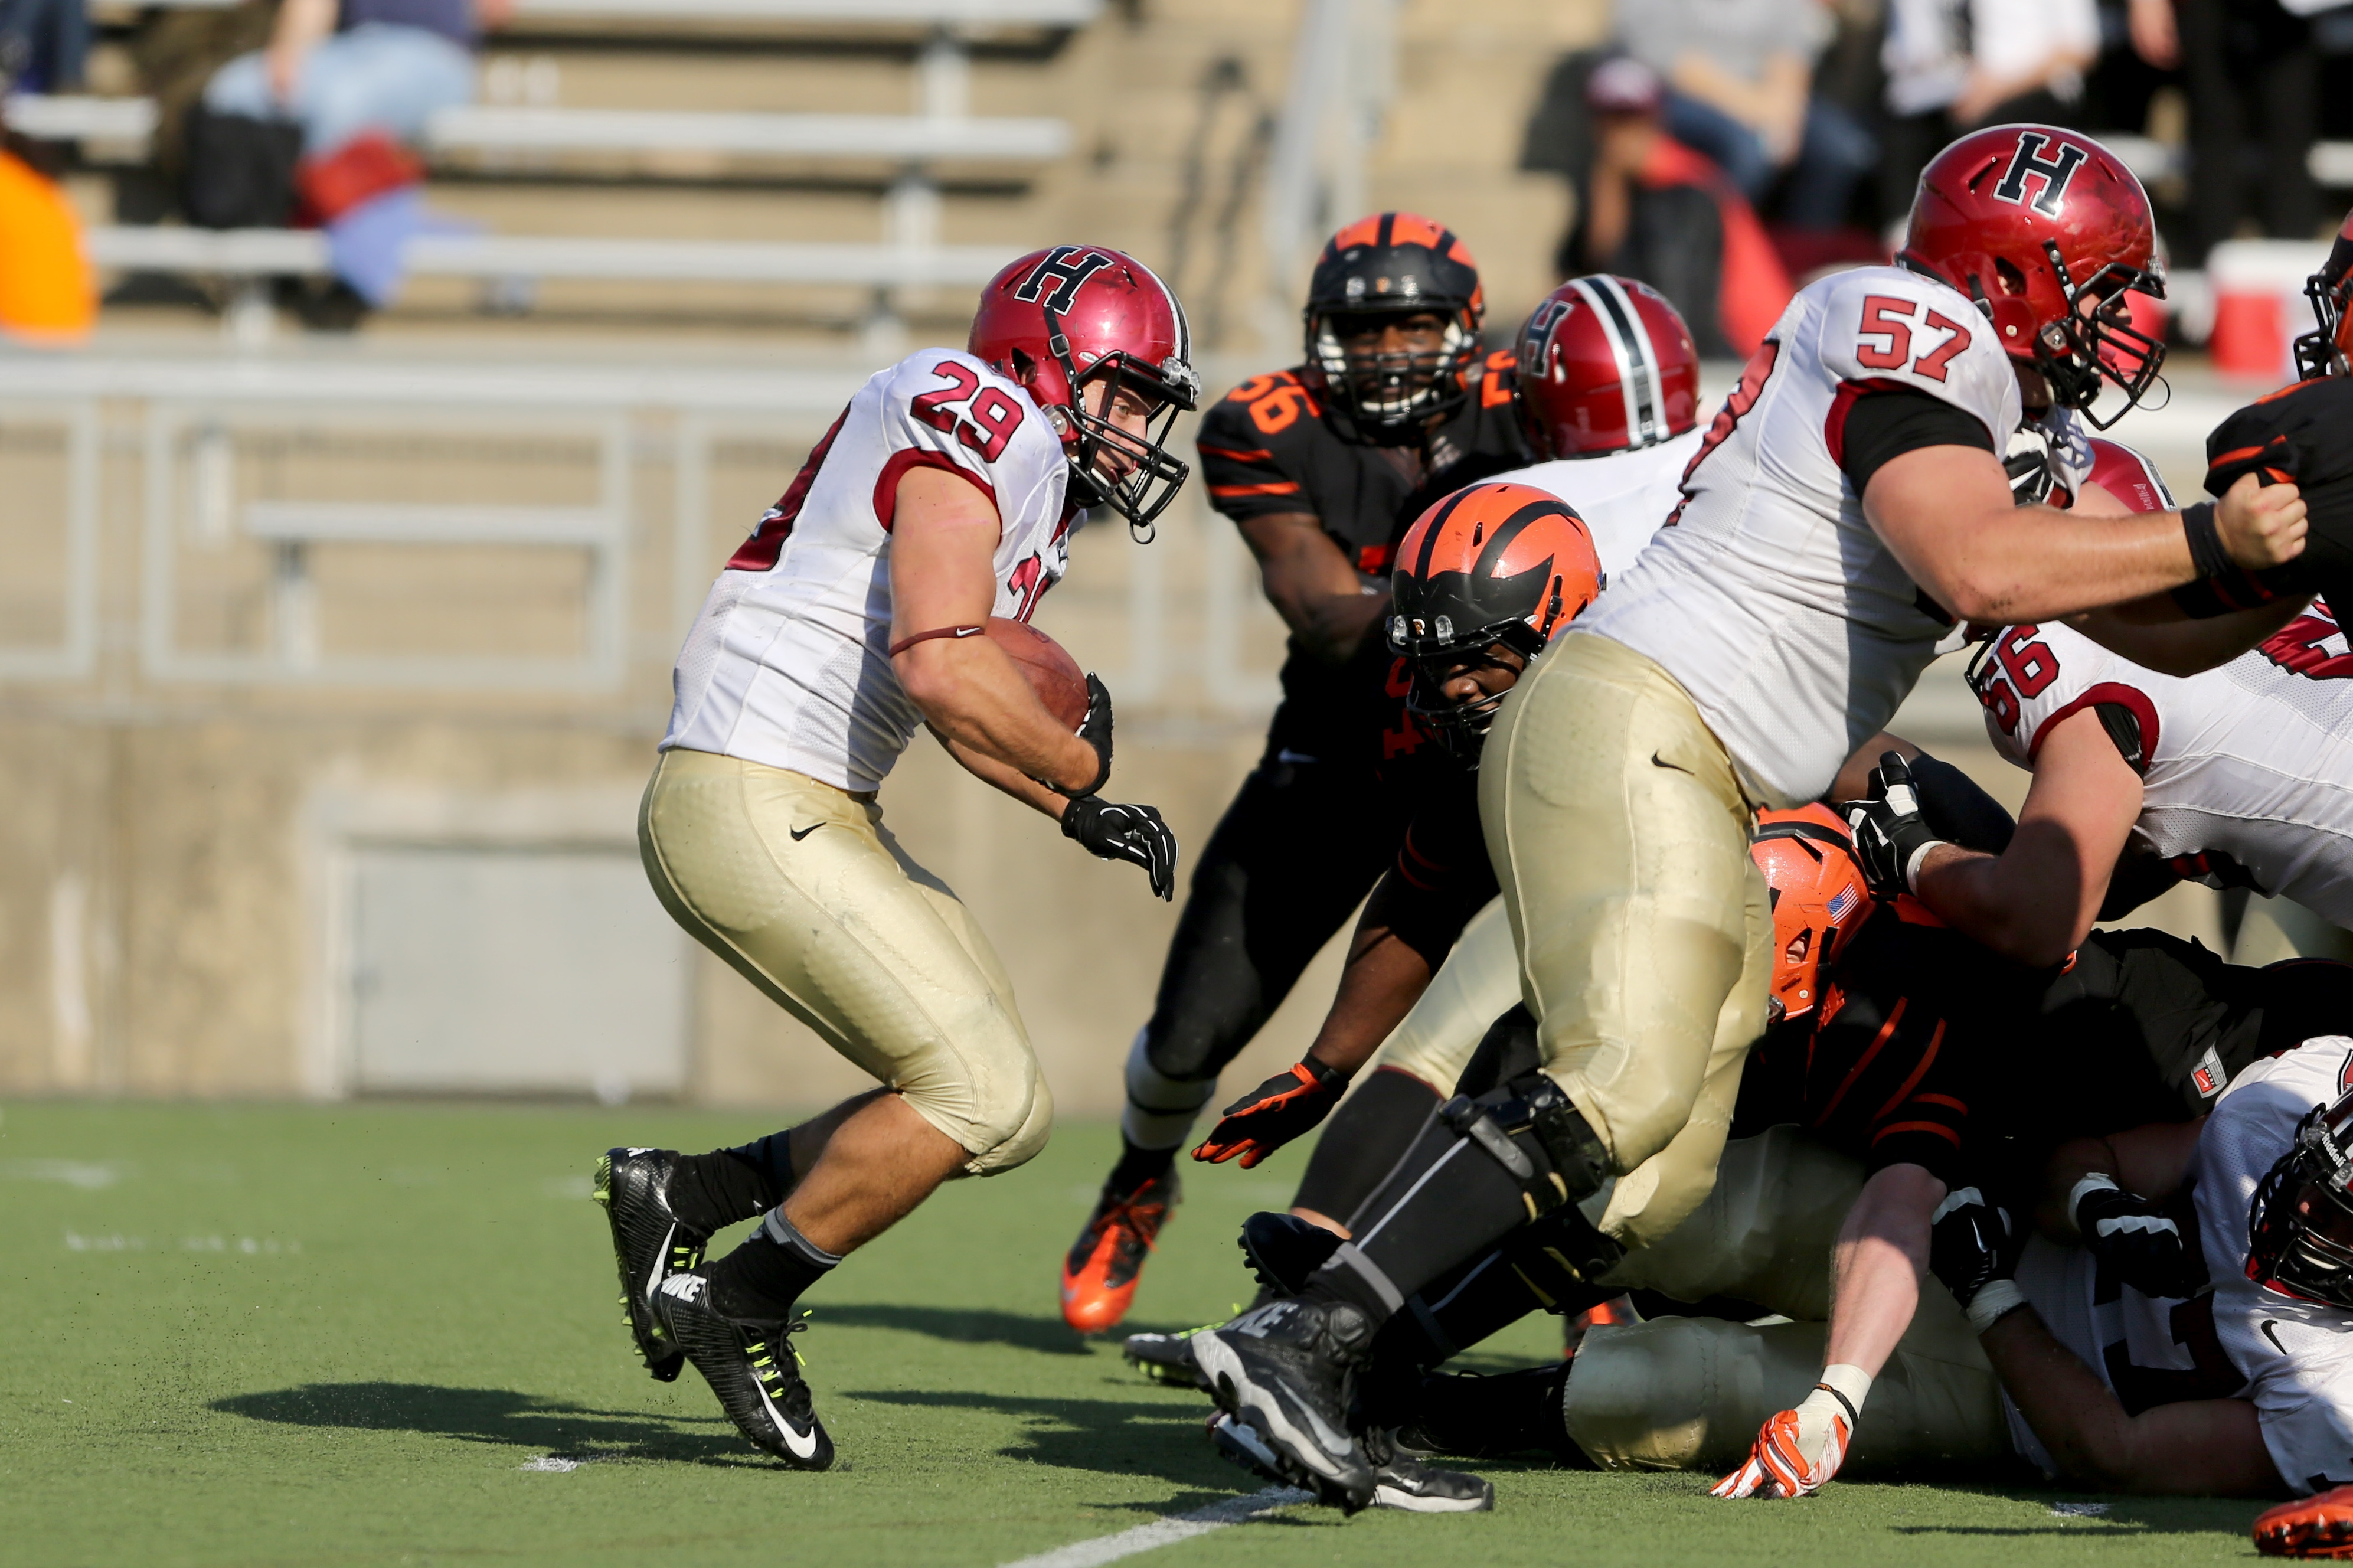 Harvard Crimson Paul Stanton Jr. #29 in action against the Princeton Tigers during a college football game on Saturday, October 25, 2014 in  Princeton,NJ.  Harvard won 49-7.  (AP Photo/Gregory Payan)